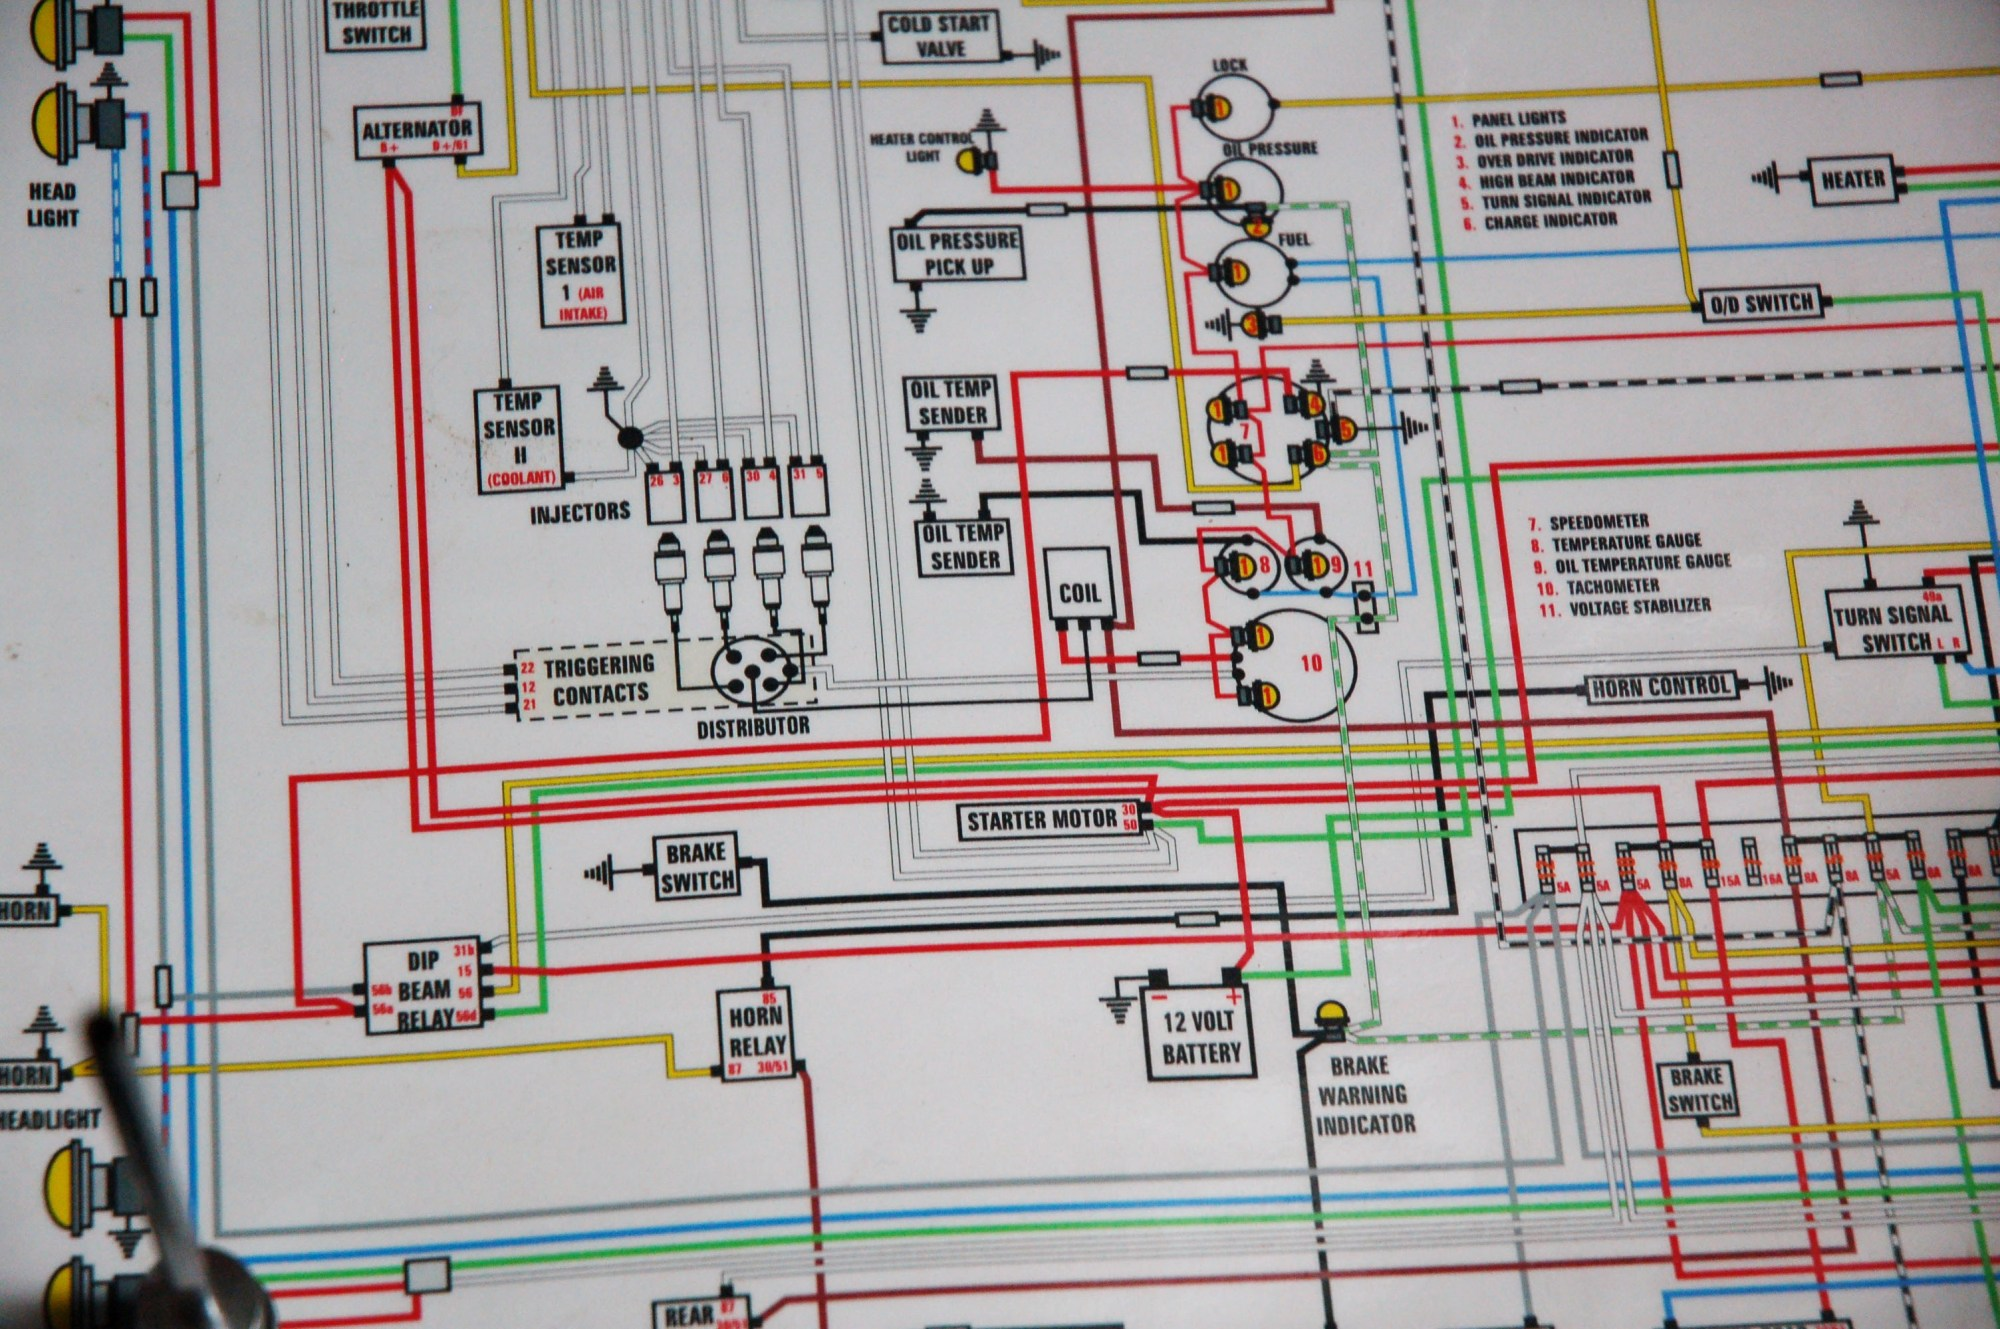 hight resolution of 1966 gmc wiring schematic today wiring diagram1966 gmc wiring harness index listing of wiring diagrams gmc